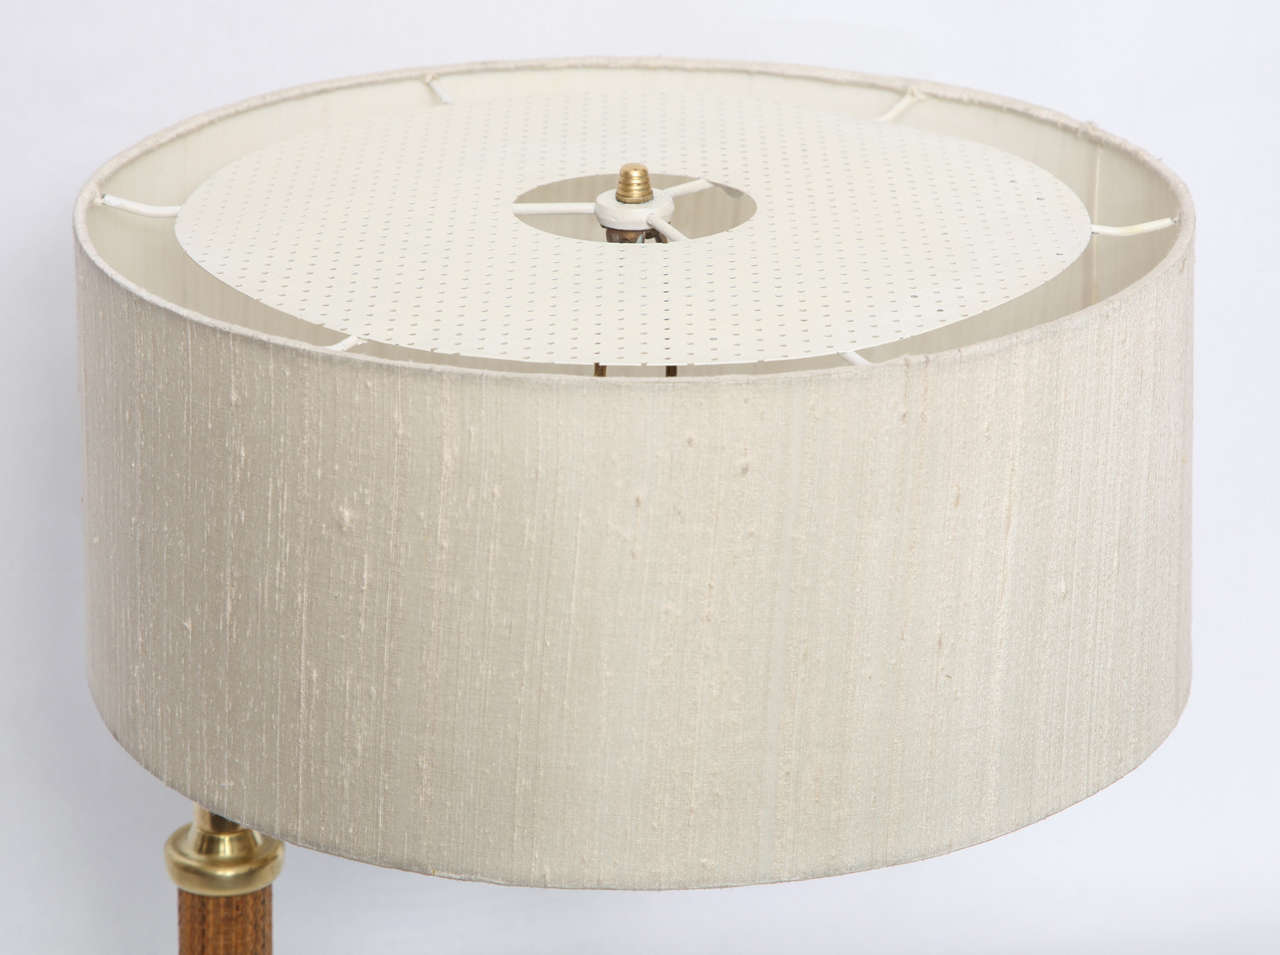 1930s American Modernist Articulated Table Lamp Attributed to Kurt Versen 5